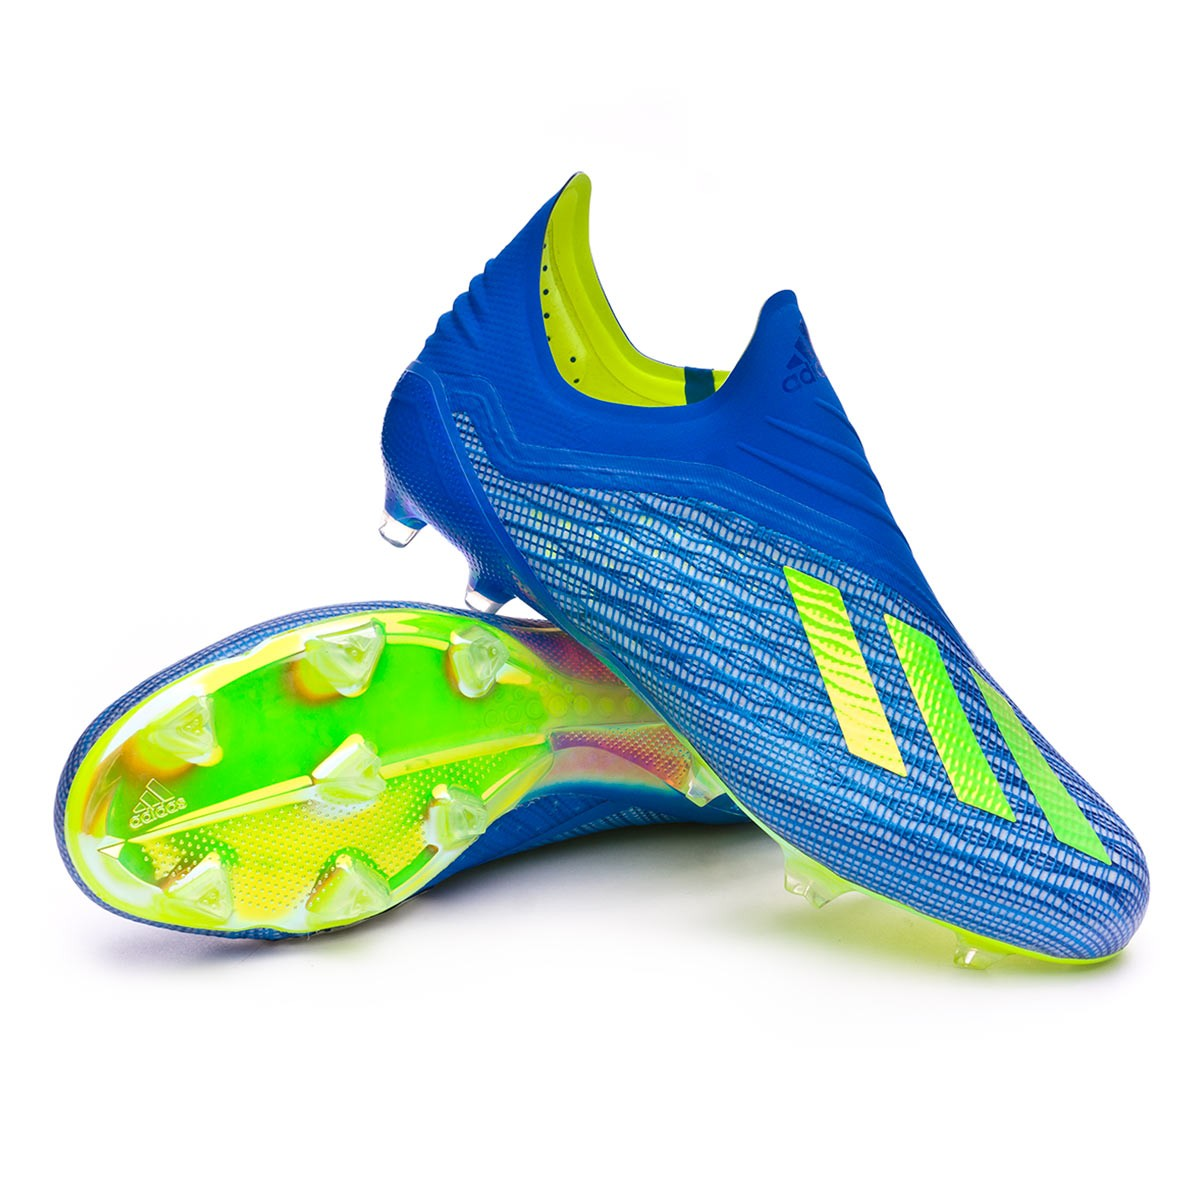 Zapatos de fútbol adidas X 18+ FG Foot blue-Solar yellow-Black ... d3ab72a894f93